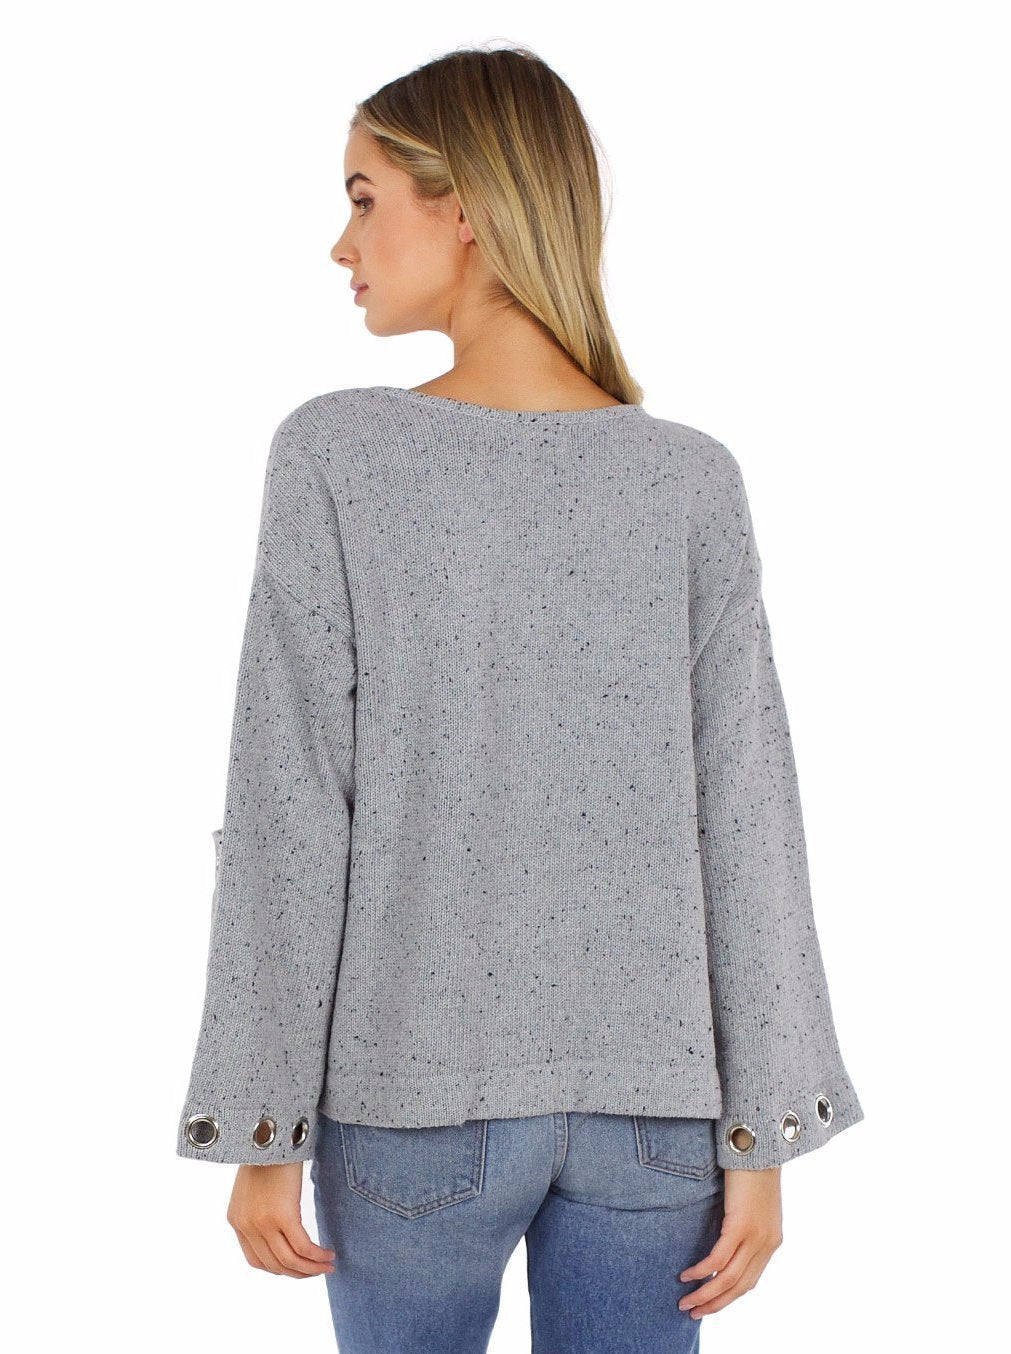 Woman wearing a sweater rental from Line & Dot called Cerc Grommet Cardi